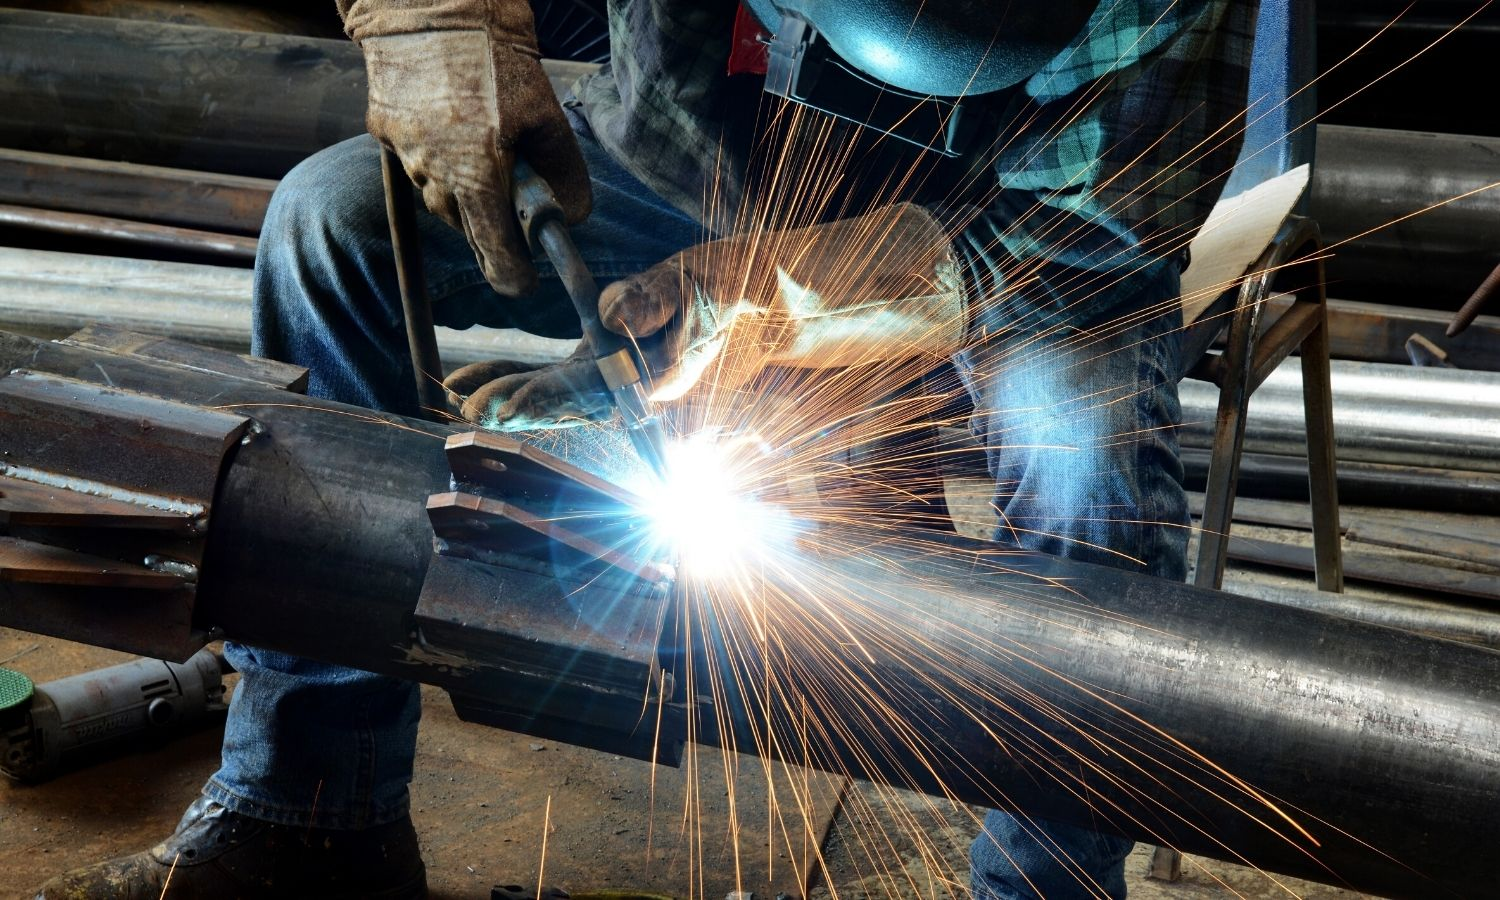 Gas Welding - Usages and Safety Tips